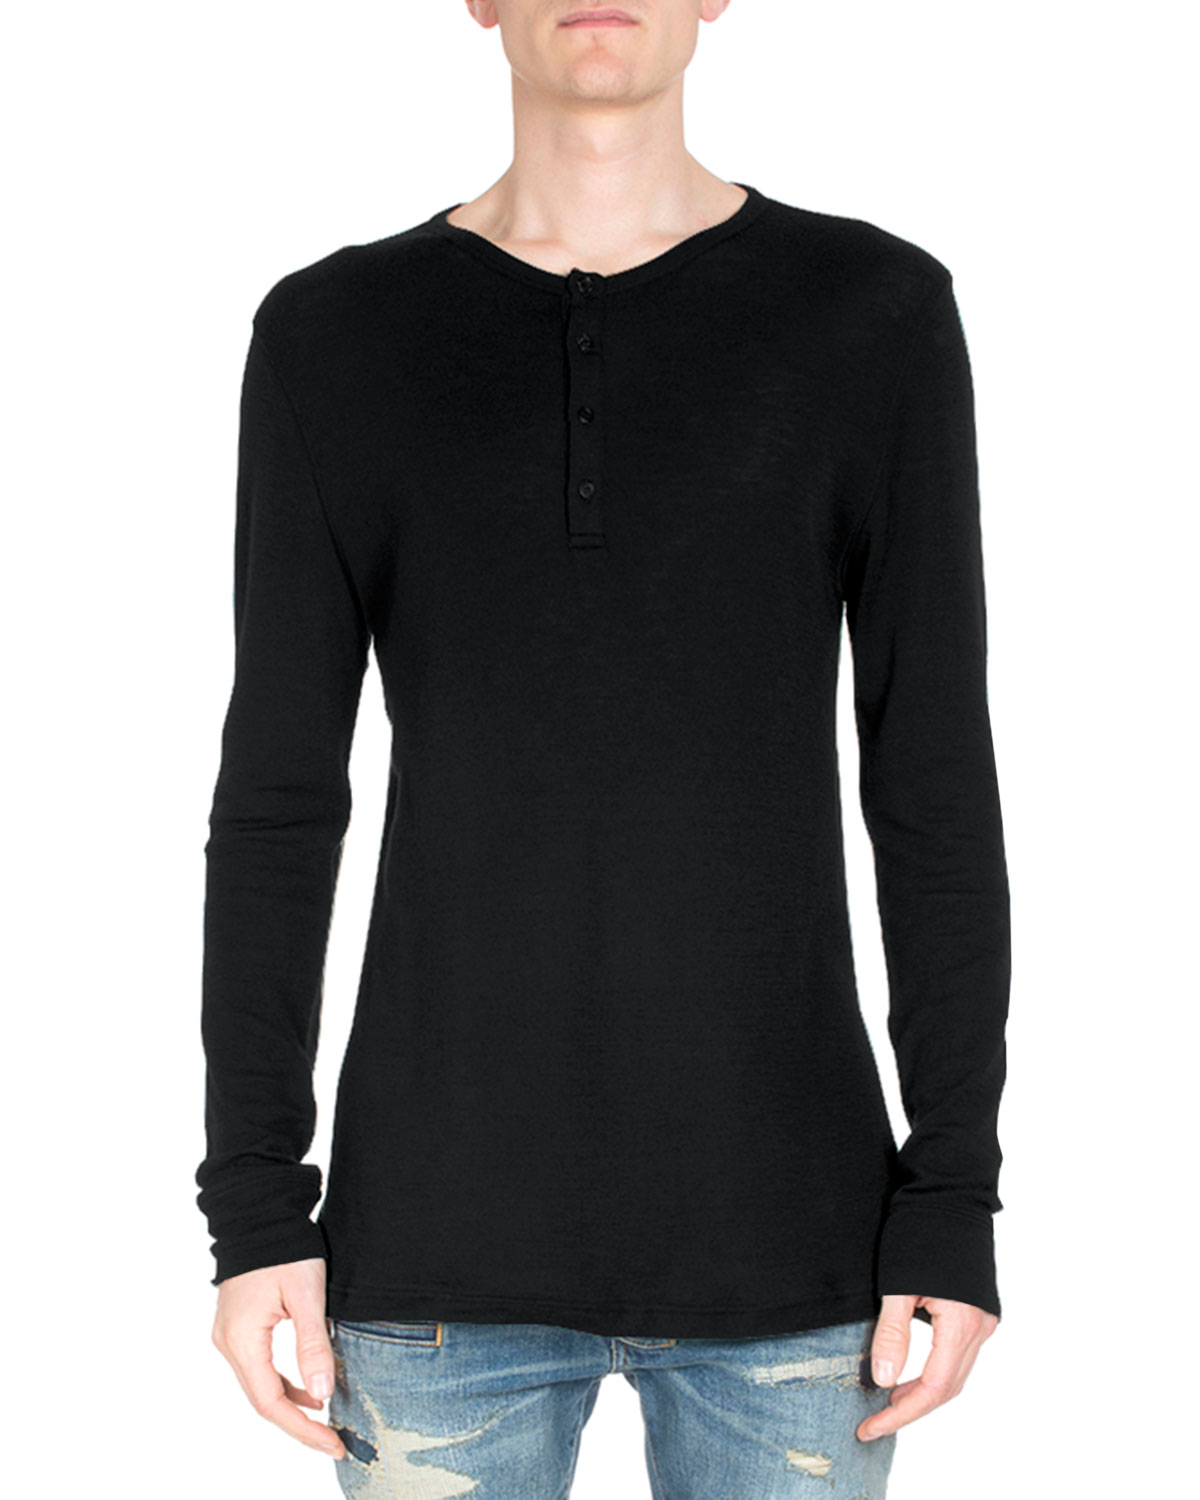 Long-Sleeve Henley T-Shirt, Black